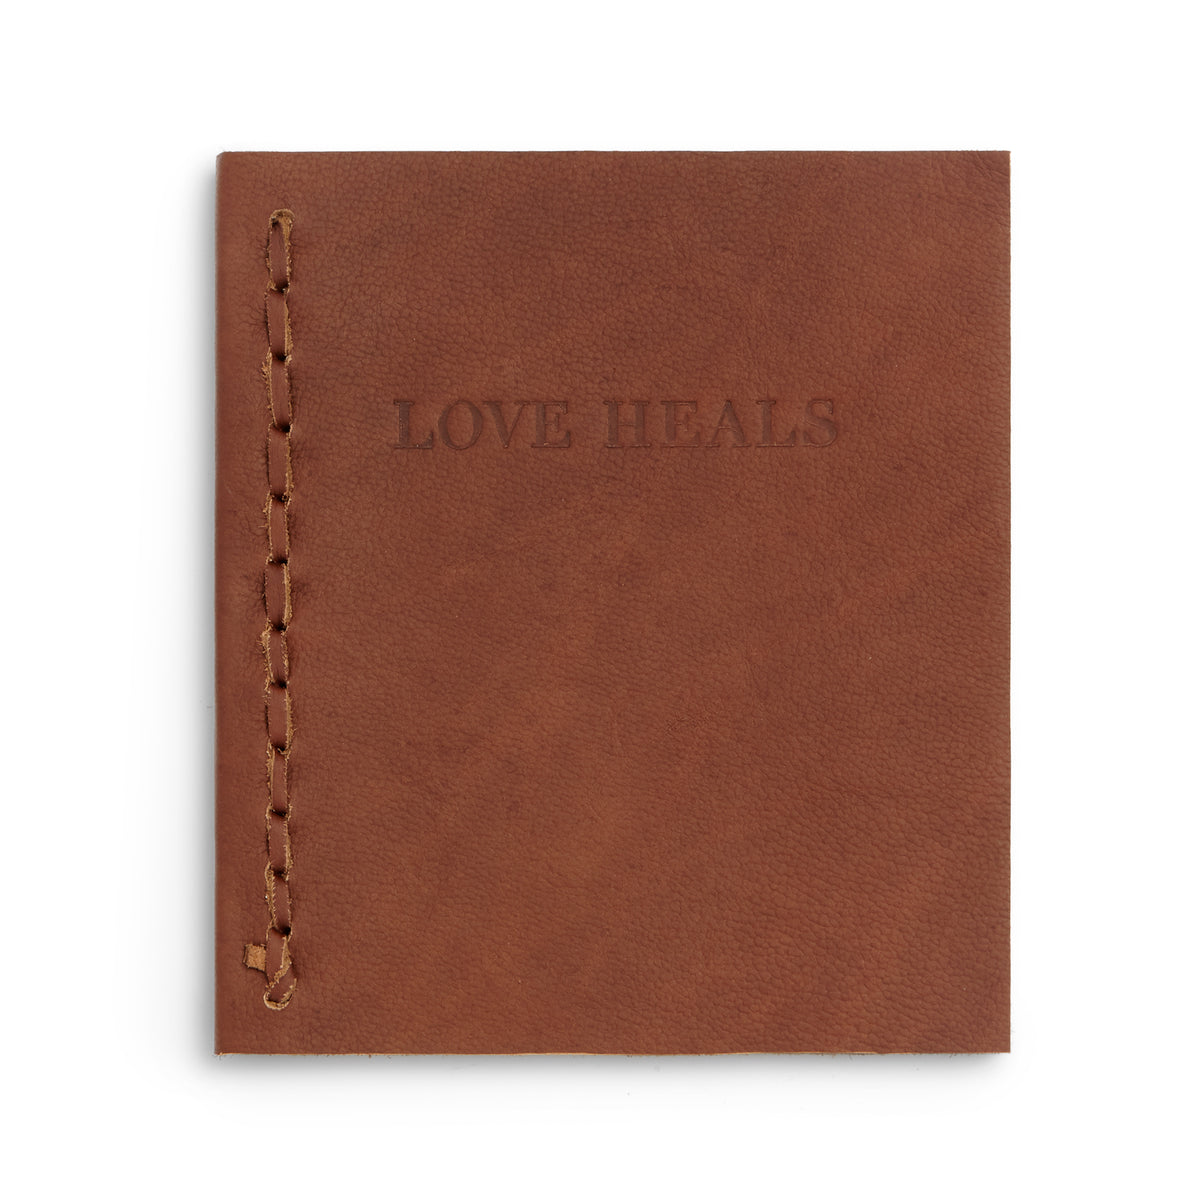 Love Heals Leather Journal